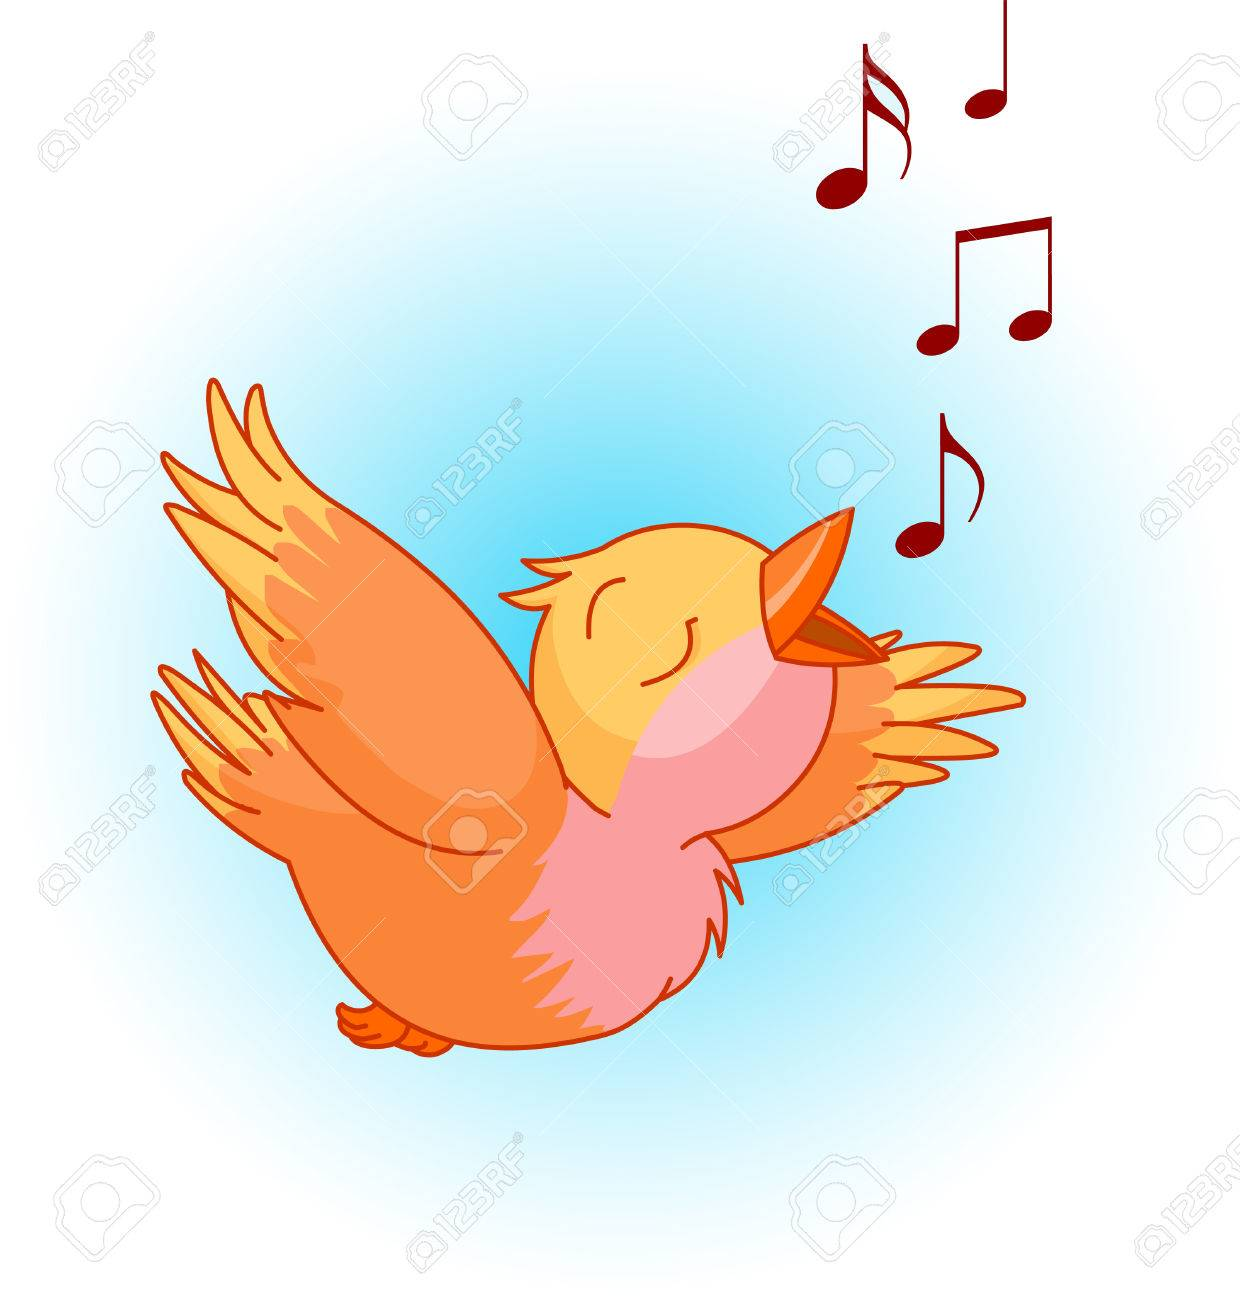 Bird Singing A Song In The Sky. Can Be Used For Spring Or Summer Time